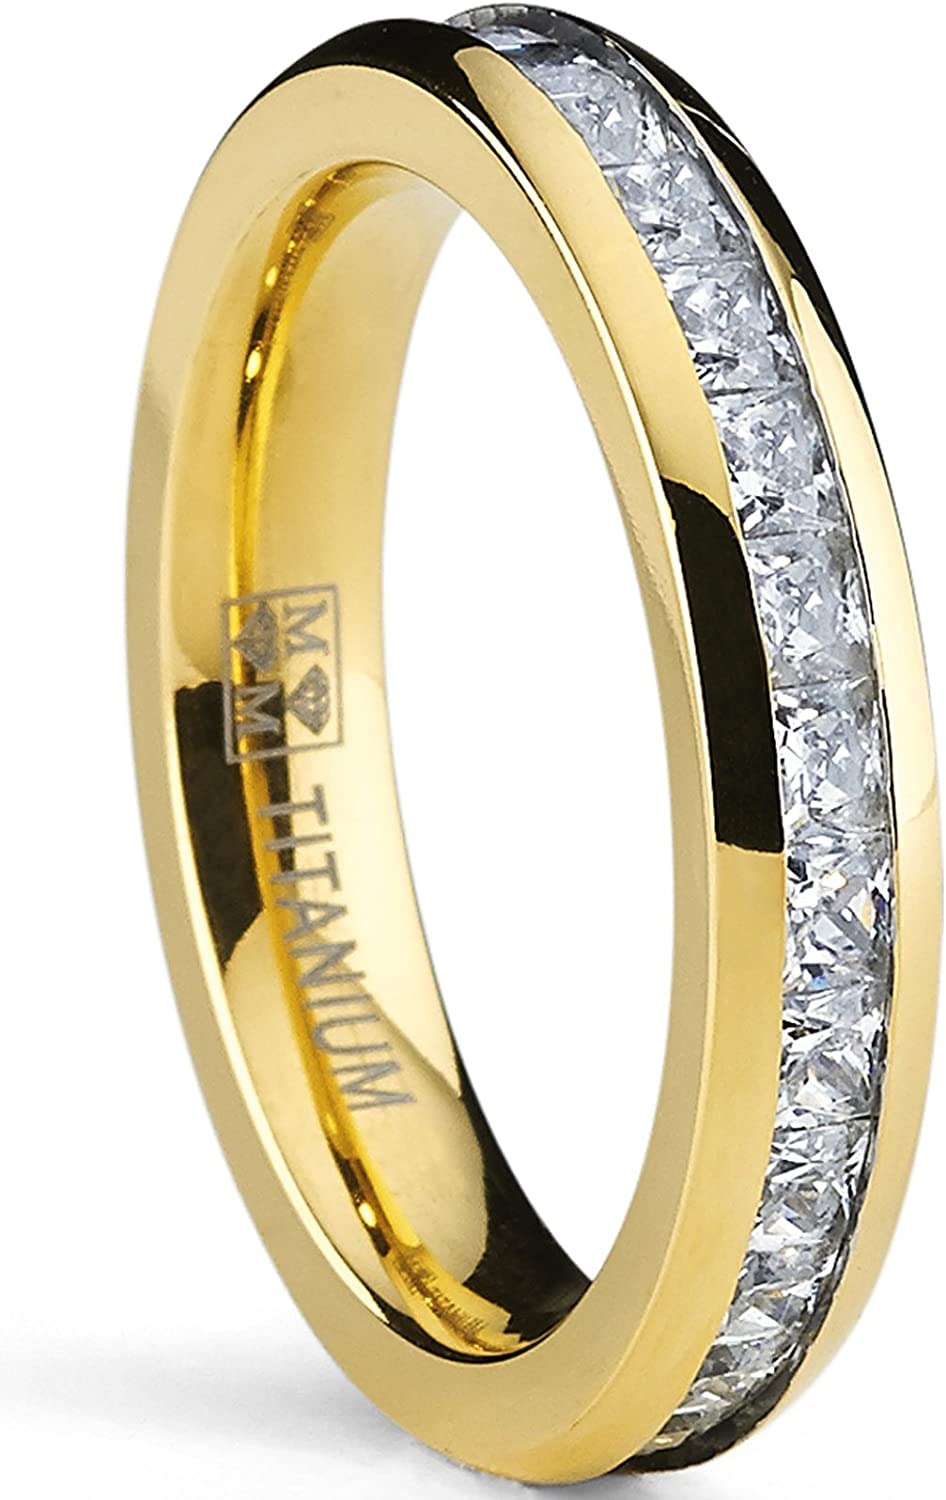 Metal Masters Co. 4MM Goldtone Plated Princess Cut Women's Eternity Titanium Ring Wedding Band with Cubic Zirconia CZ